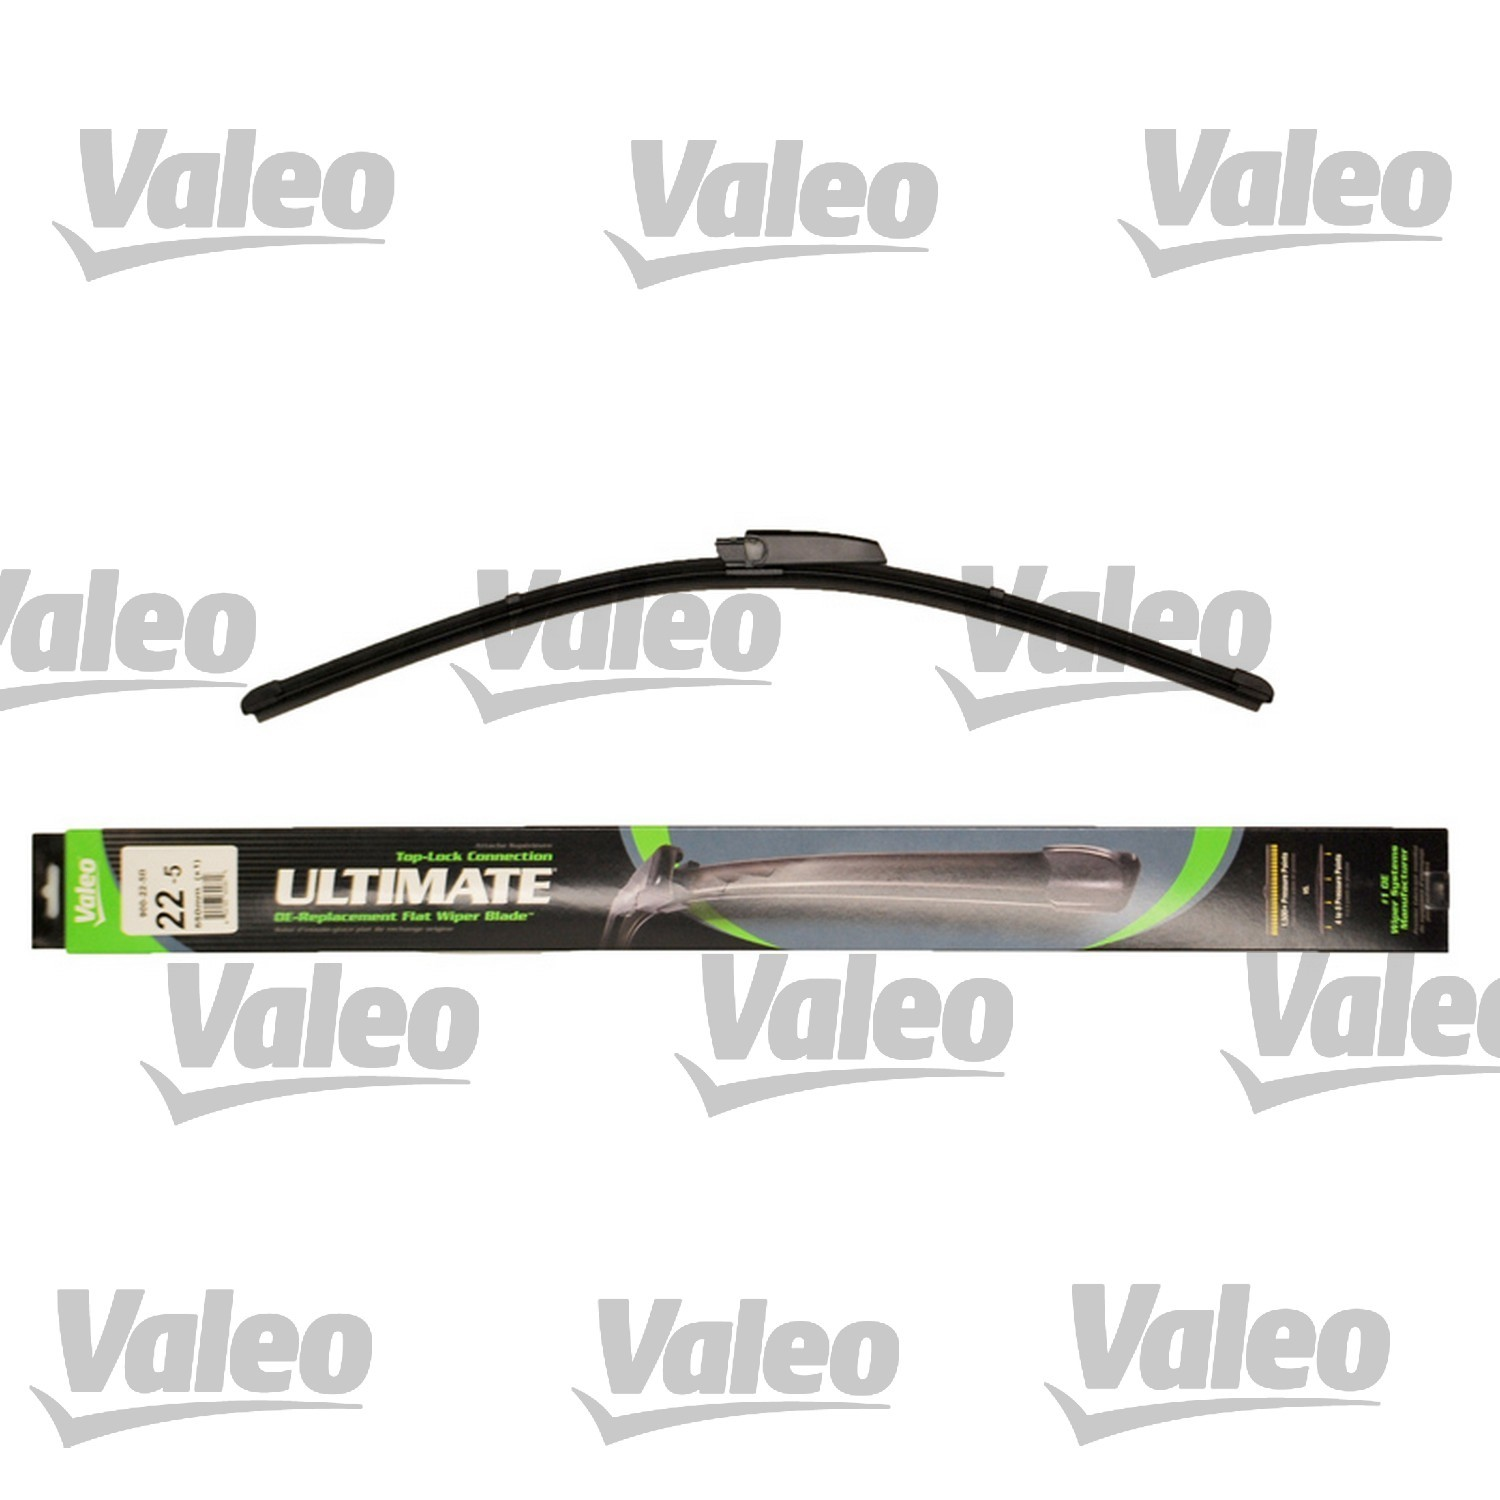 VALEO - Ultimate Wiper Blade - VEO 900-22-5B